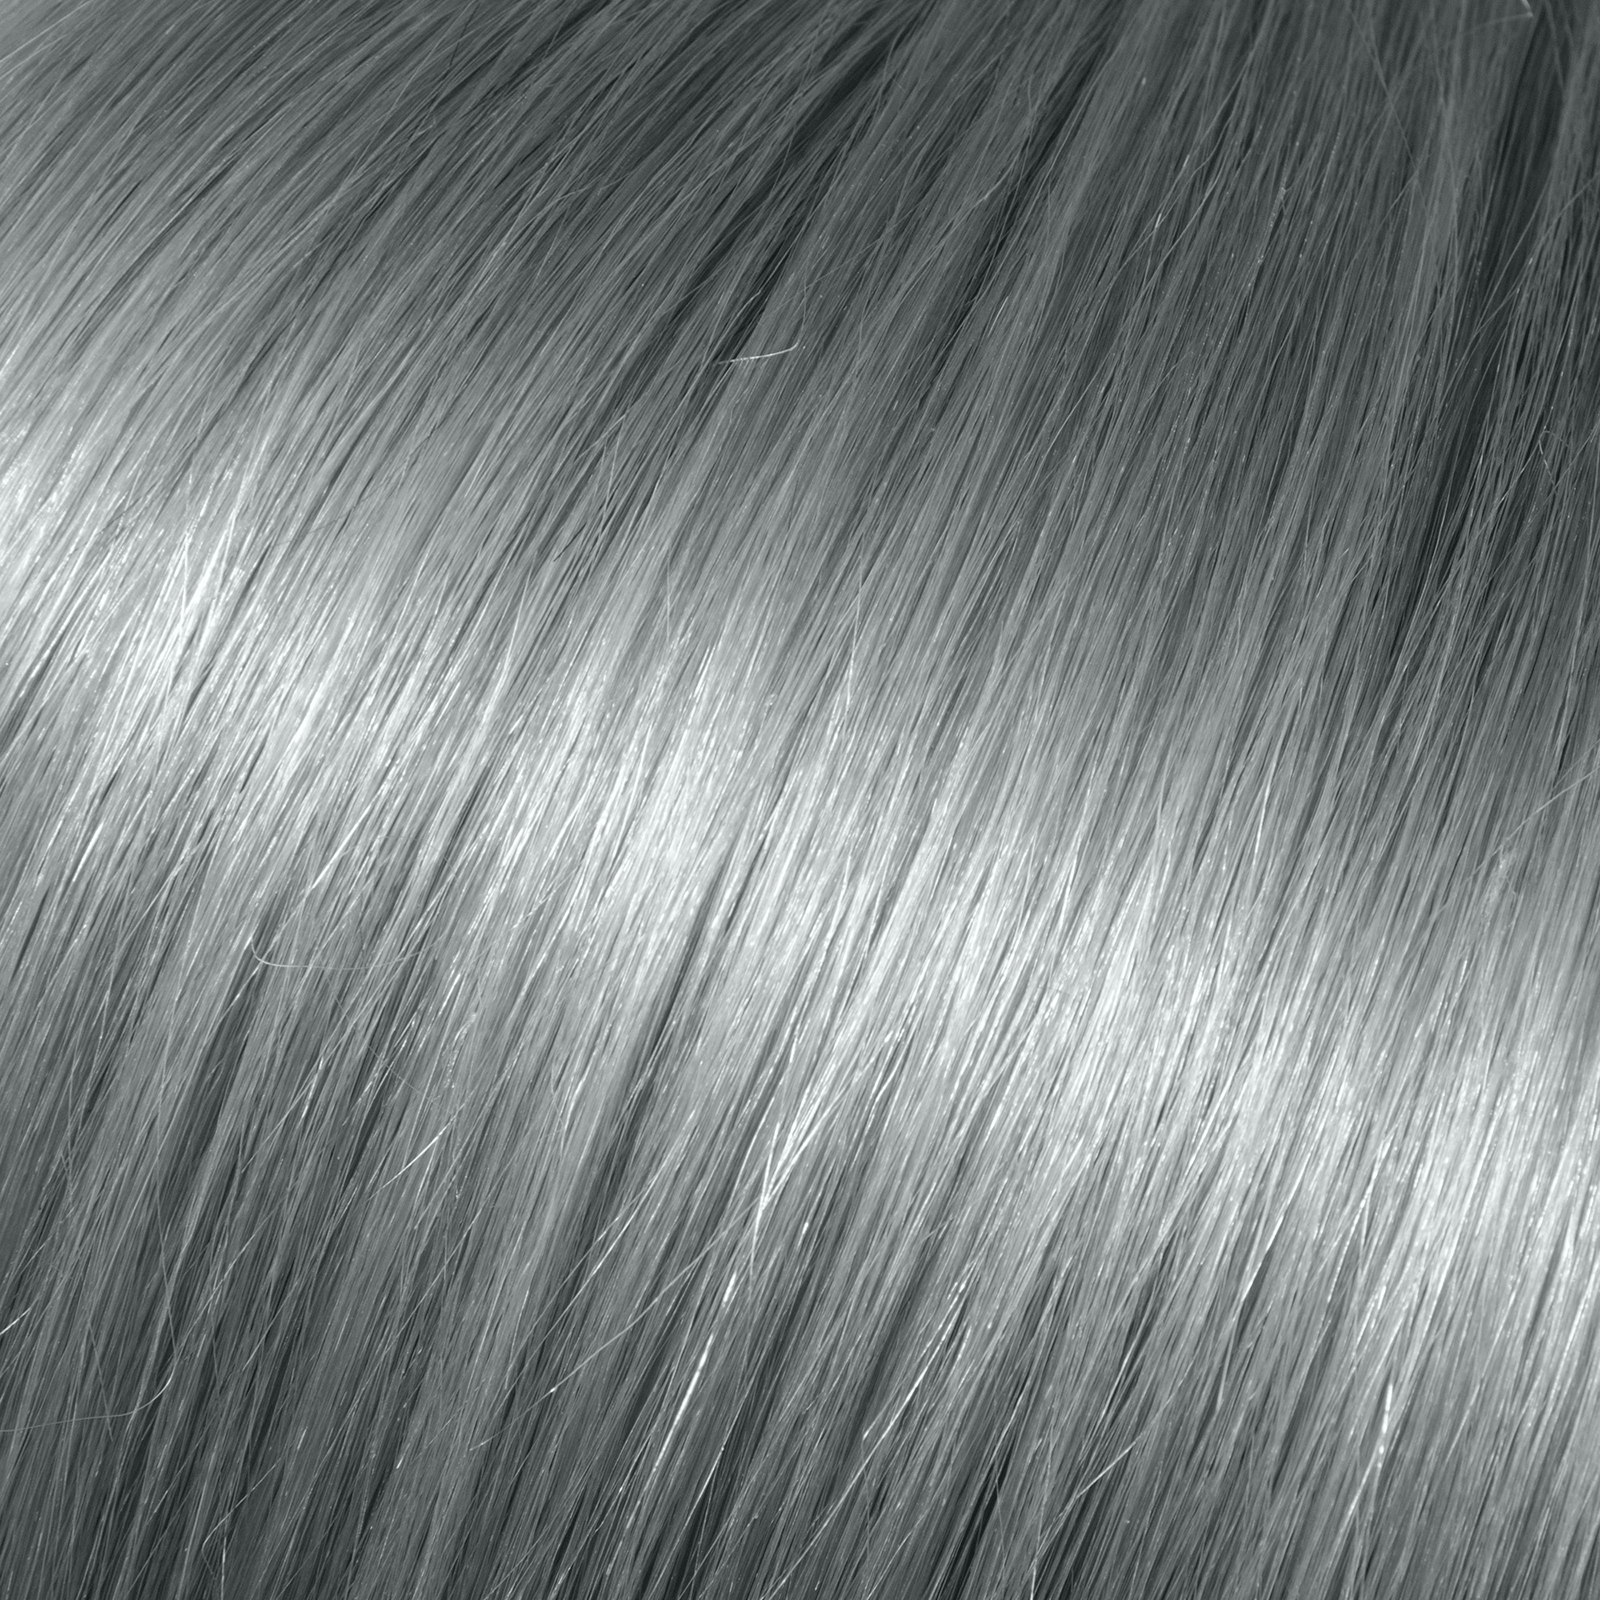 Tape In Pro Hair Extension 18 Inch Silver Stella Babe Hair